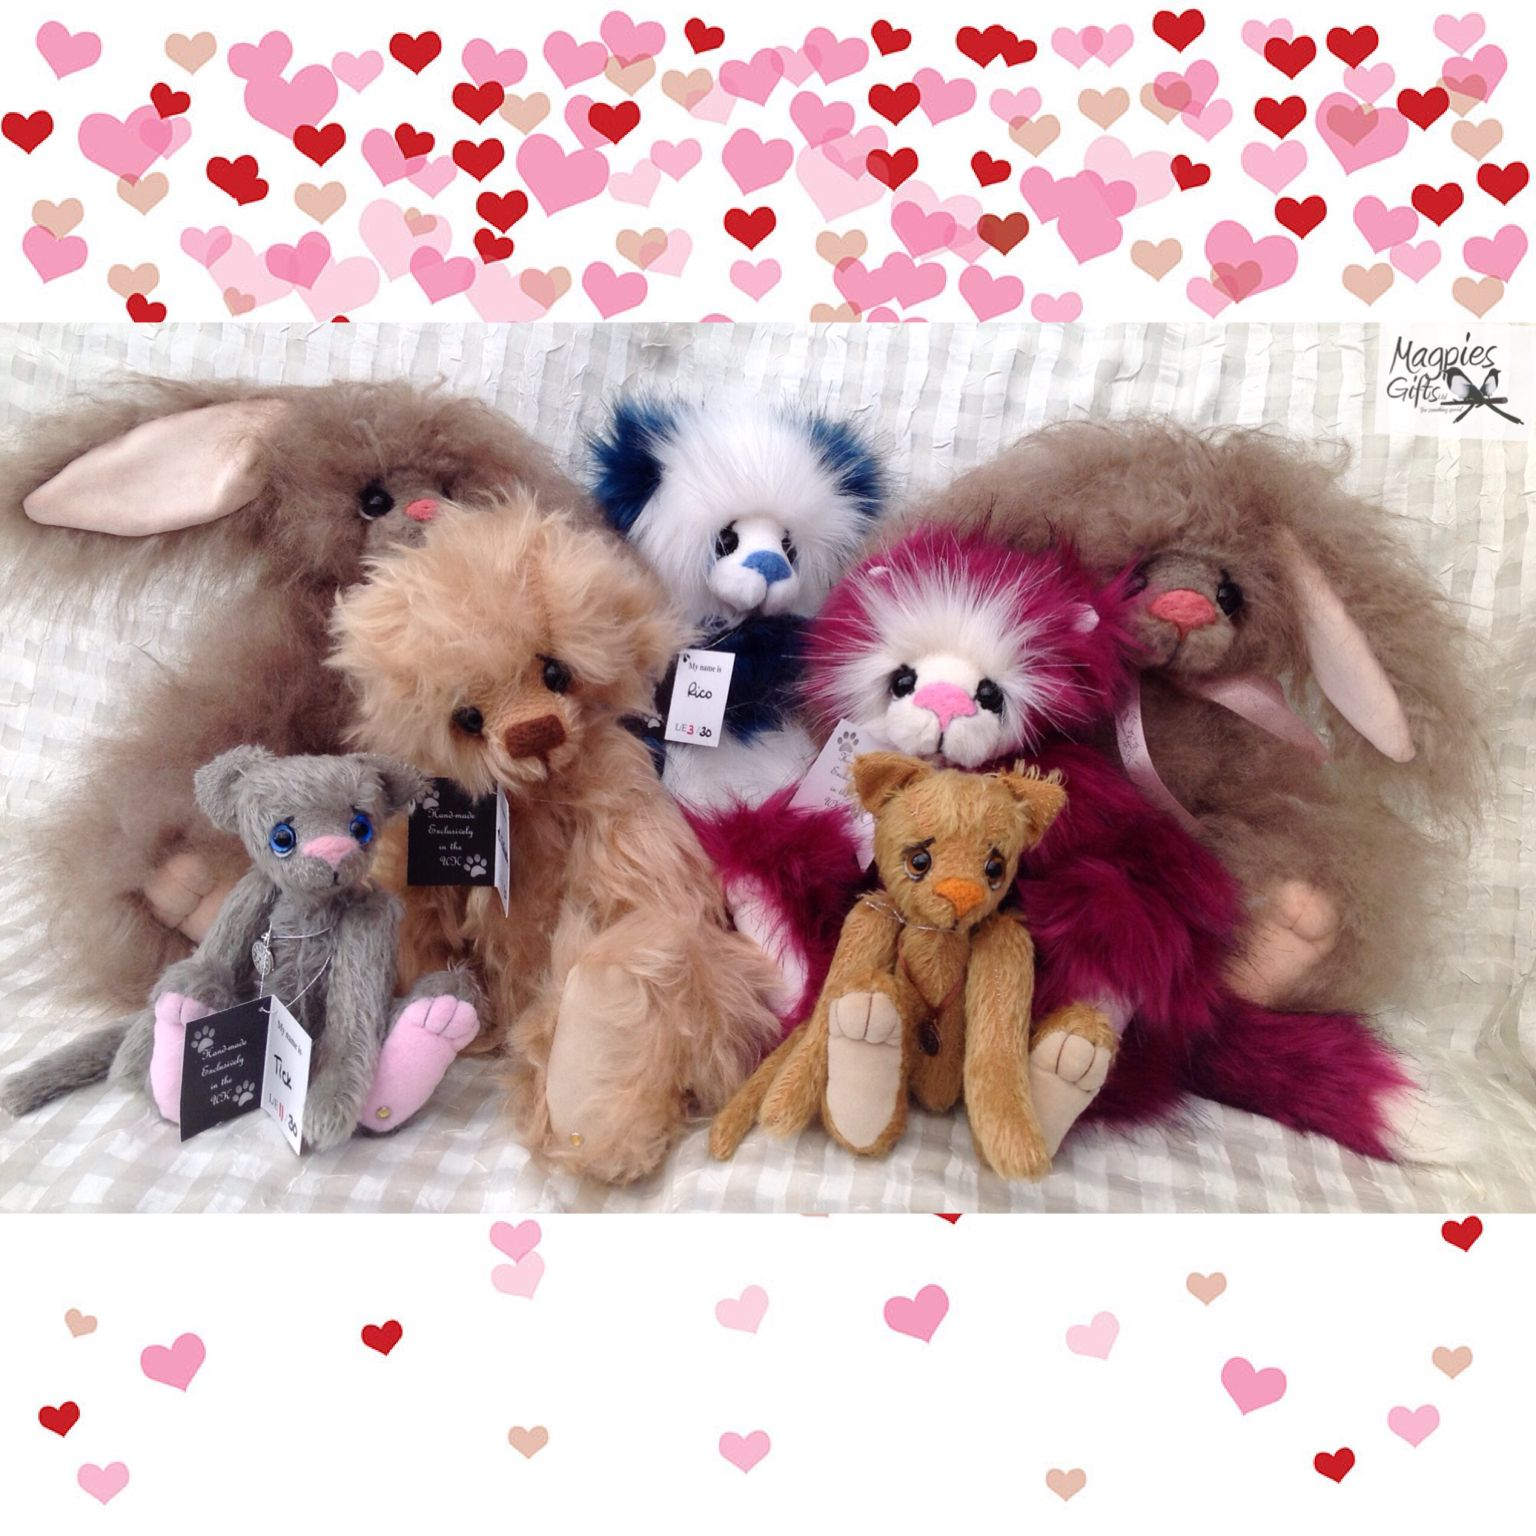 More kaycee bears arrive at magpies gifts in stock with free pp more kaycee bears arrive at magpies gifts in stock with free pp in the uk negle Image collections